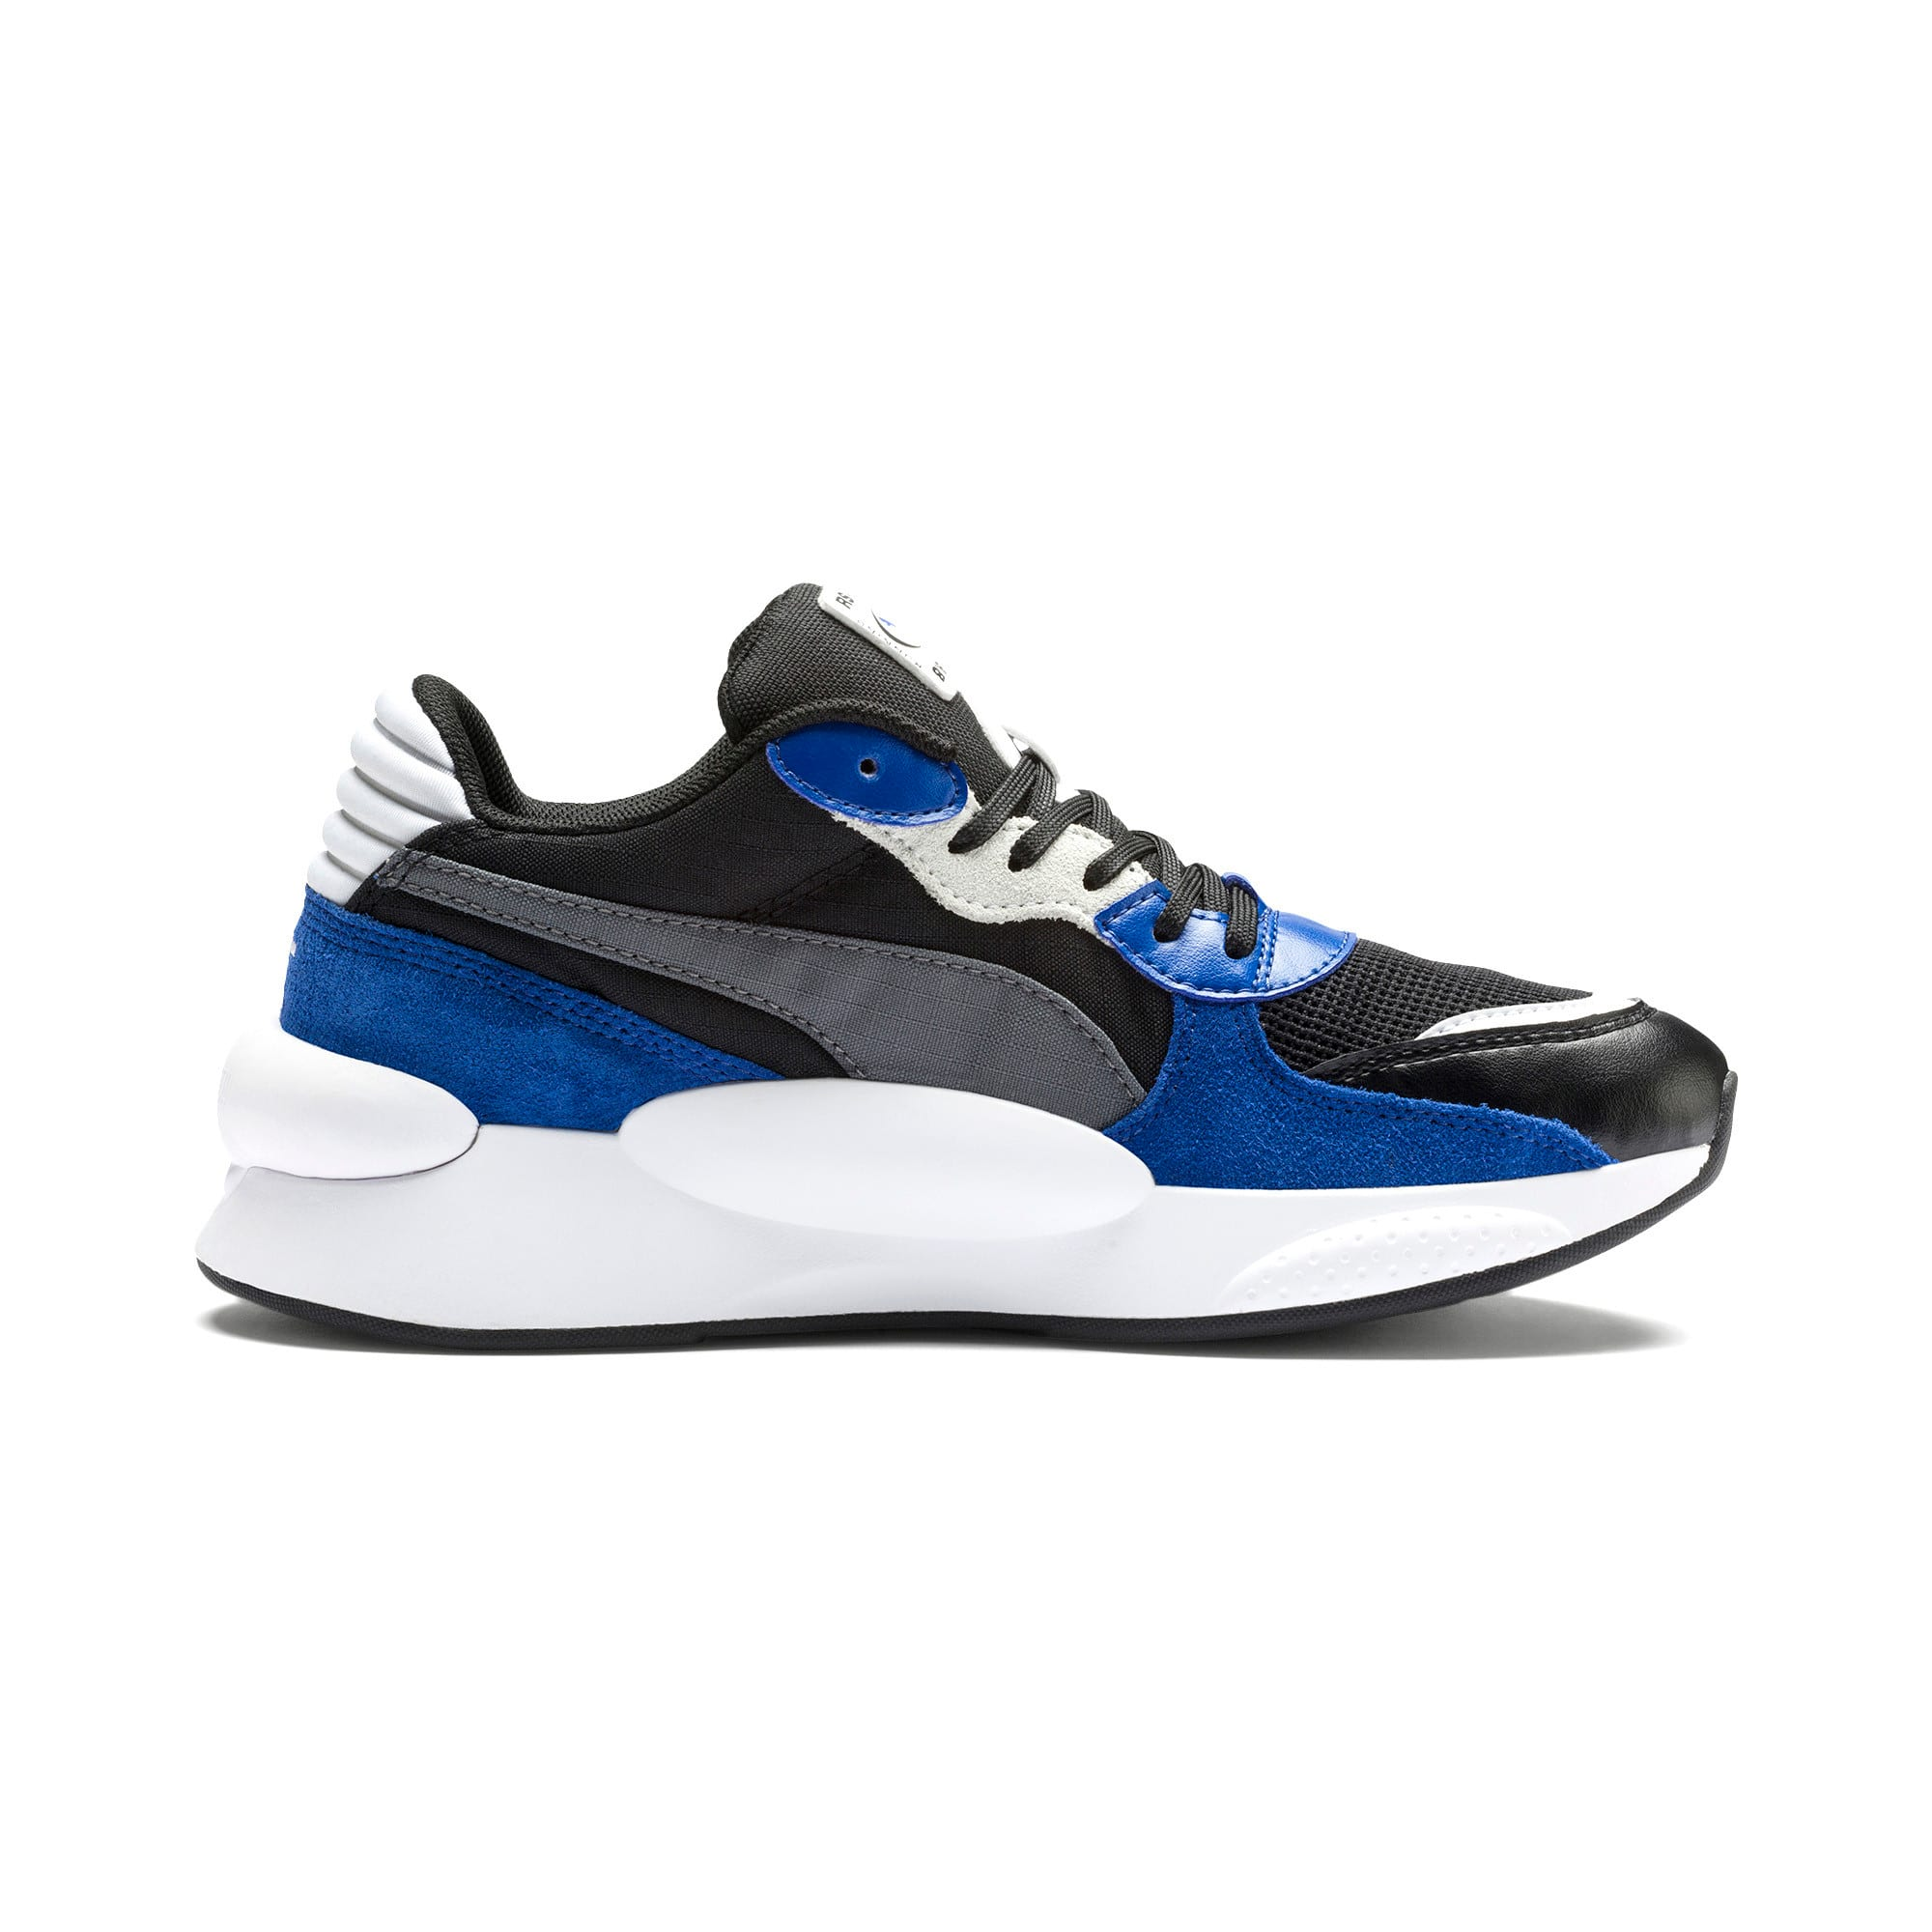 Thumbnail 5 of RS 9.8 Space Youth Sneaker, Puma Black-Galaxy Blue, medium